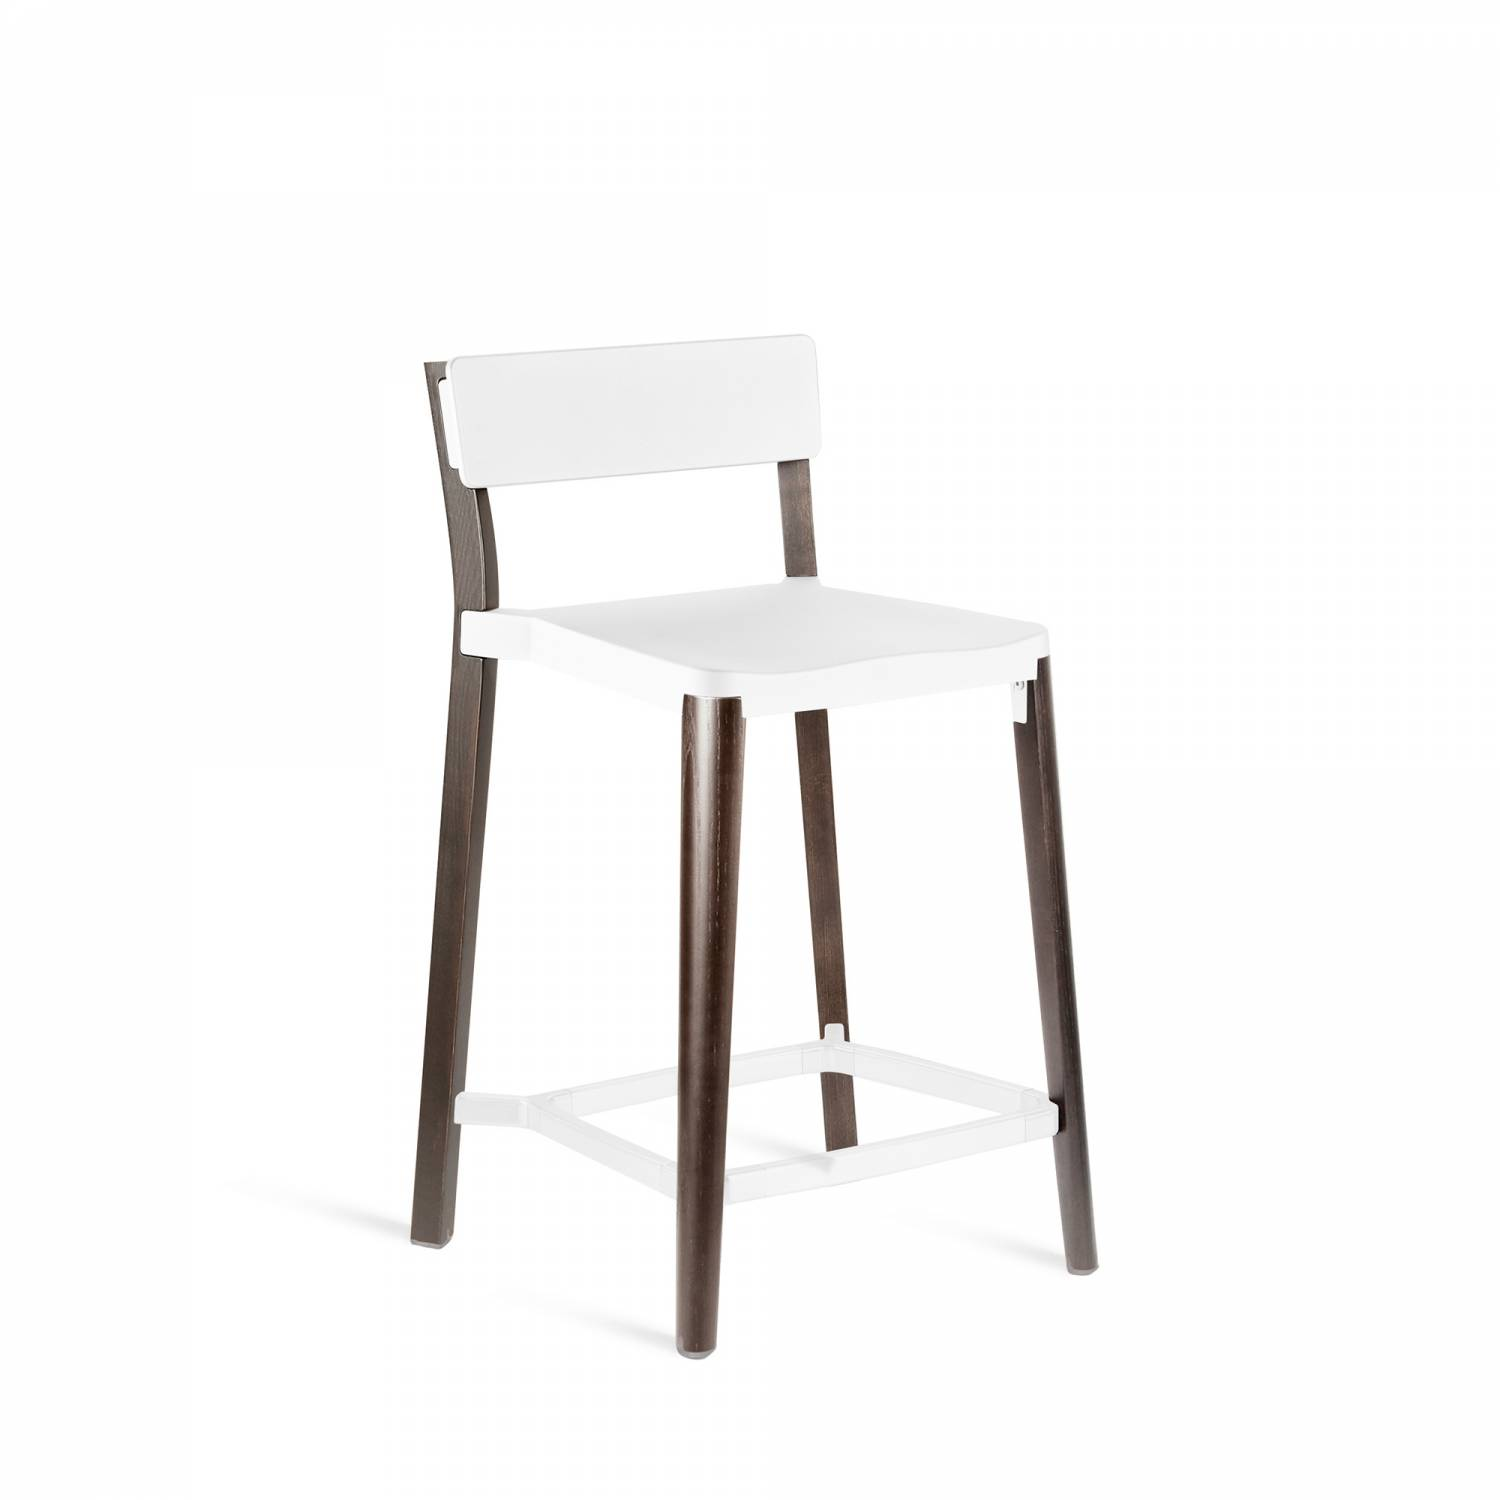 Lancaster Counter Stool White, Dark Wood Base, Without Seat Pad, Without Back Pad